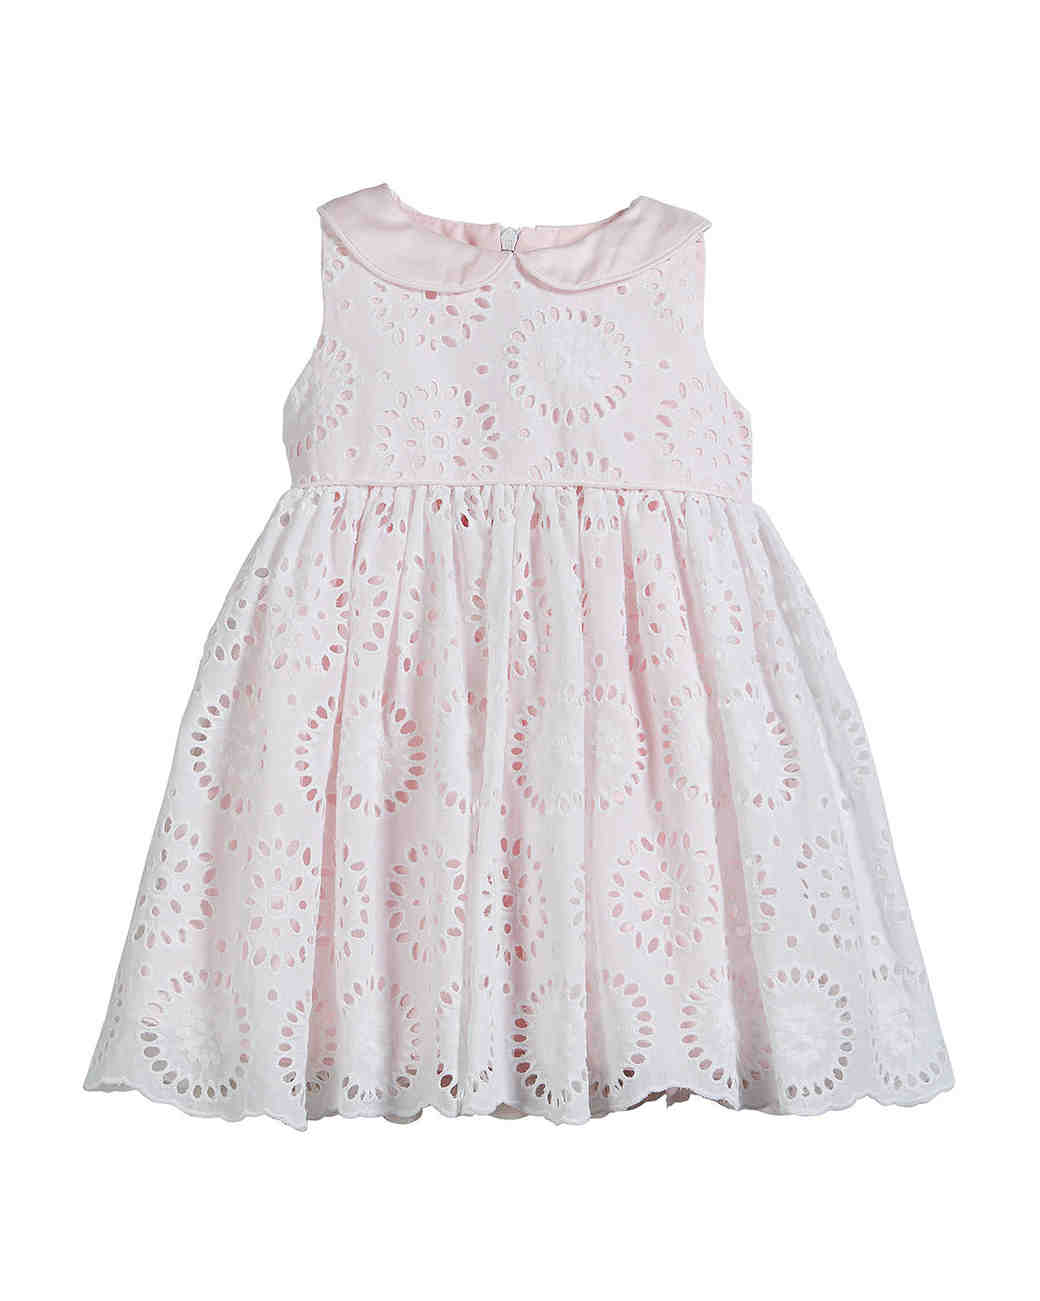 summer flower girl outfit eyelet pink dress